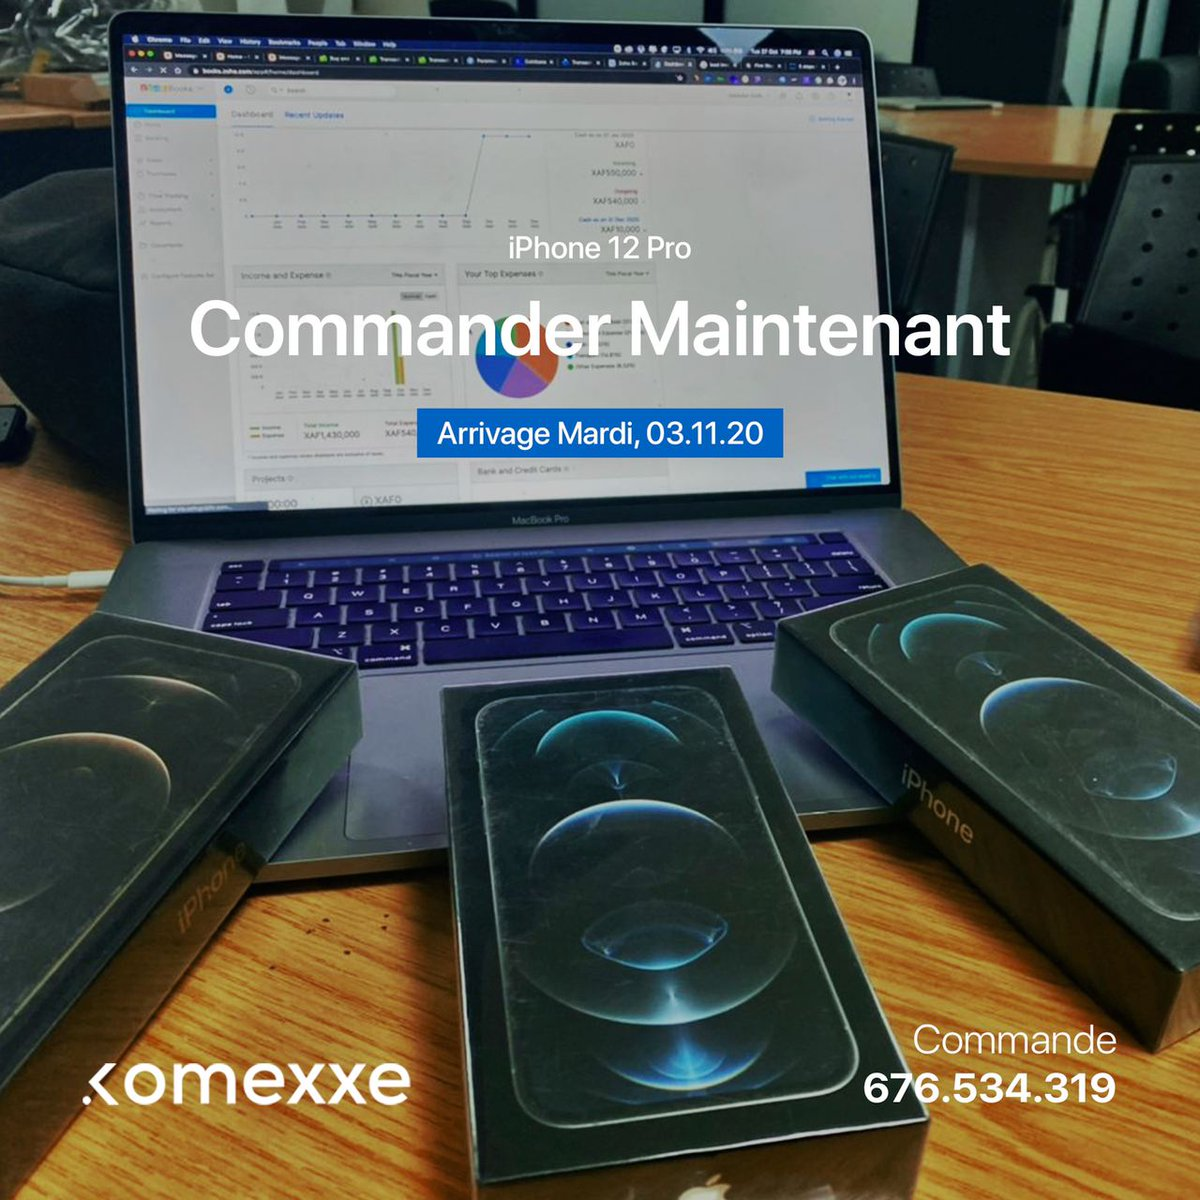 #Komexxe #Komexxans #Apple #AppleLove #Technology #unboxing #iOS14 #iPhone12 #iPhone12Pro #Commerce #Commercants